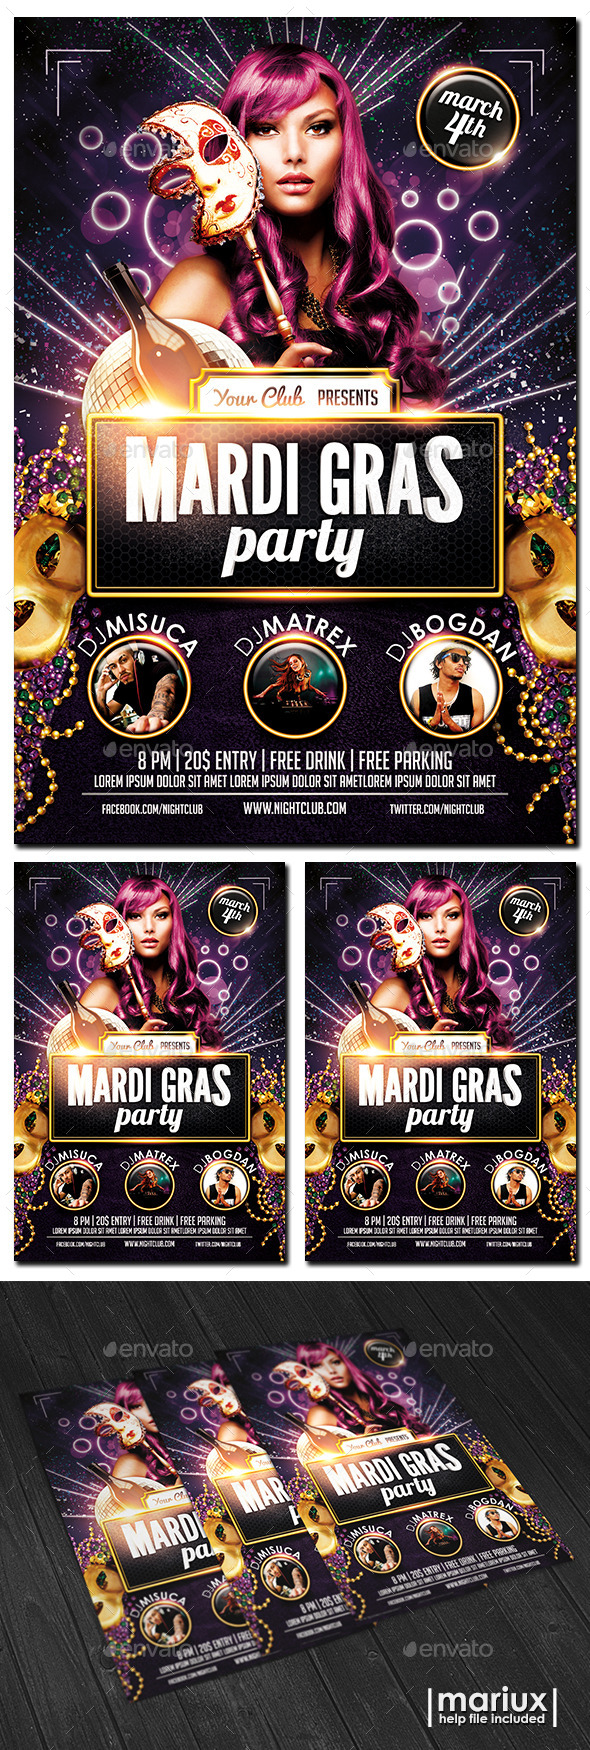 GraphicRiver Mardi Gras Party Flyer 10142800